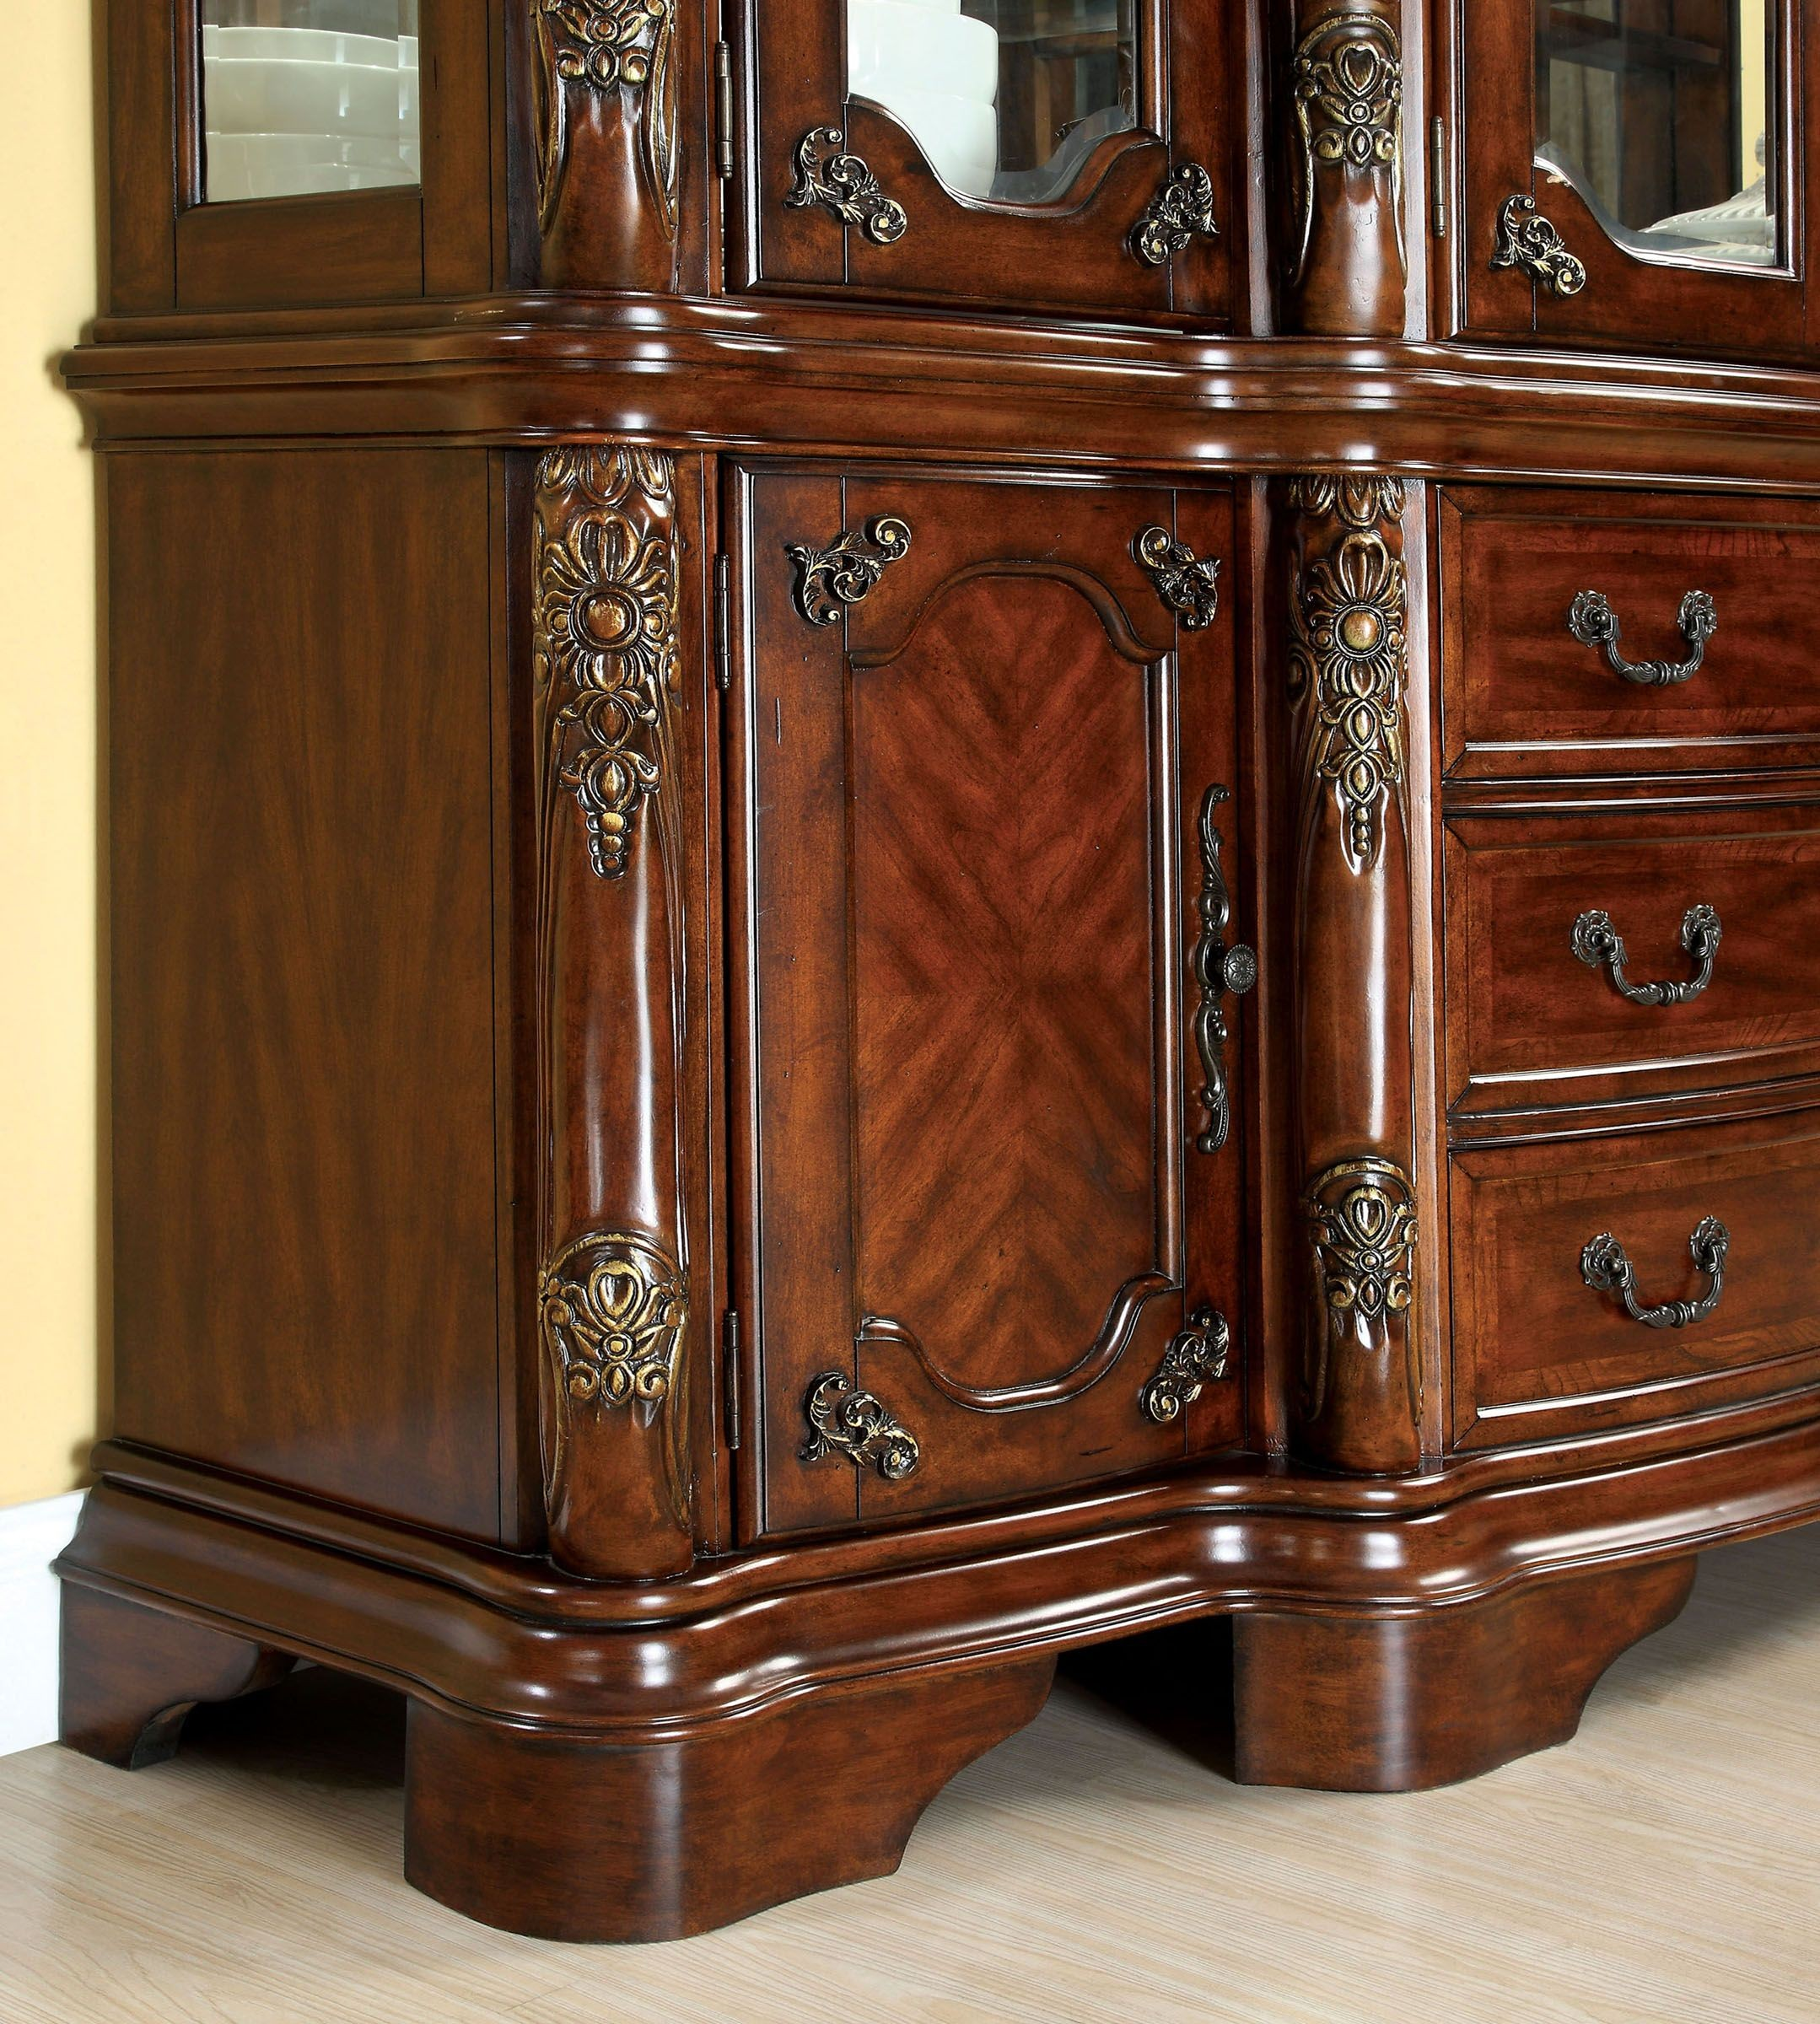 Cherry Dining Room Furniture: Cromwell Antique Cherry Formal Dining Room Set From